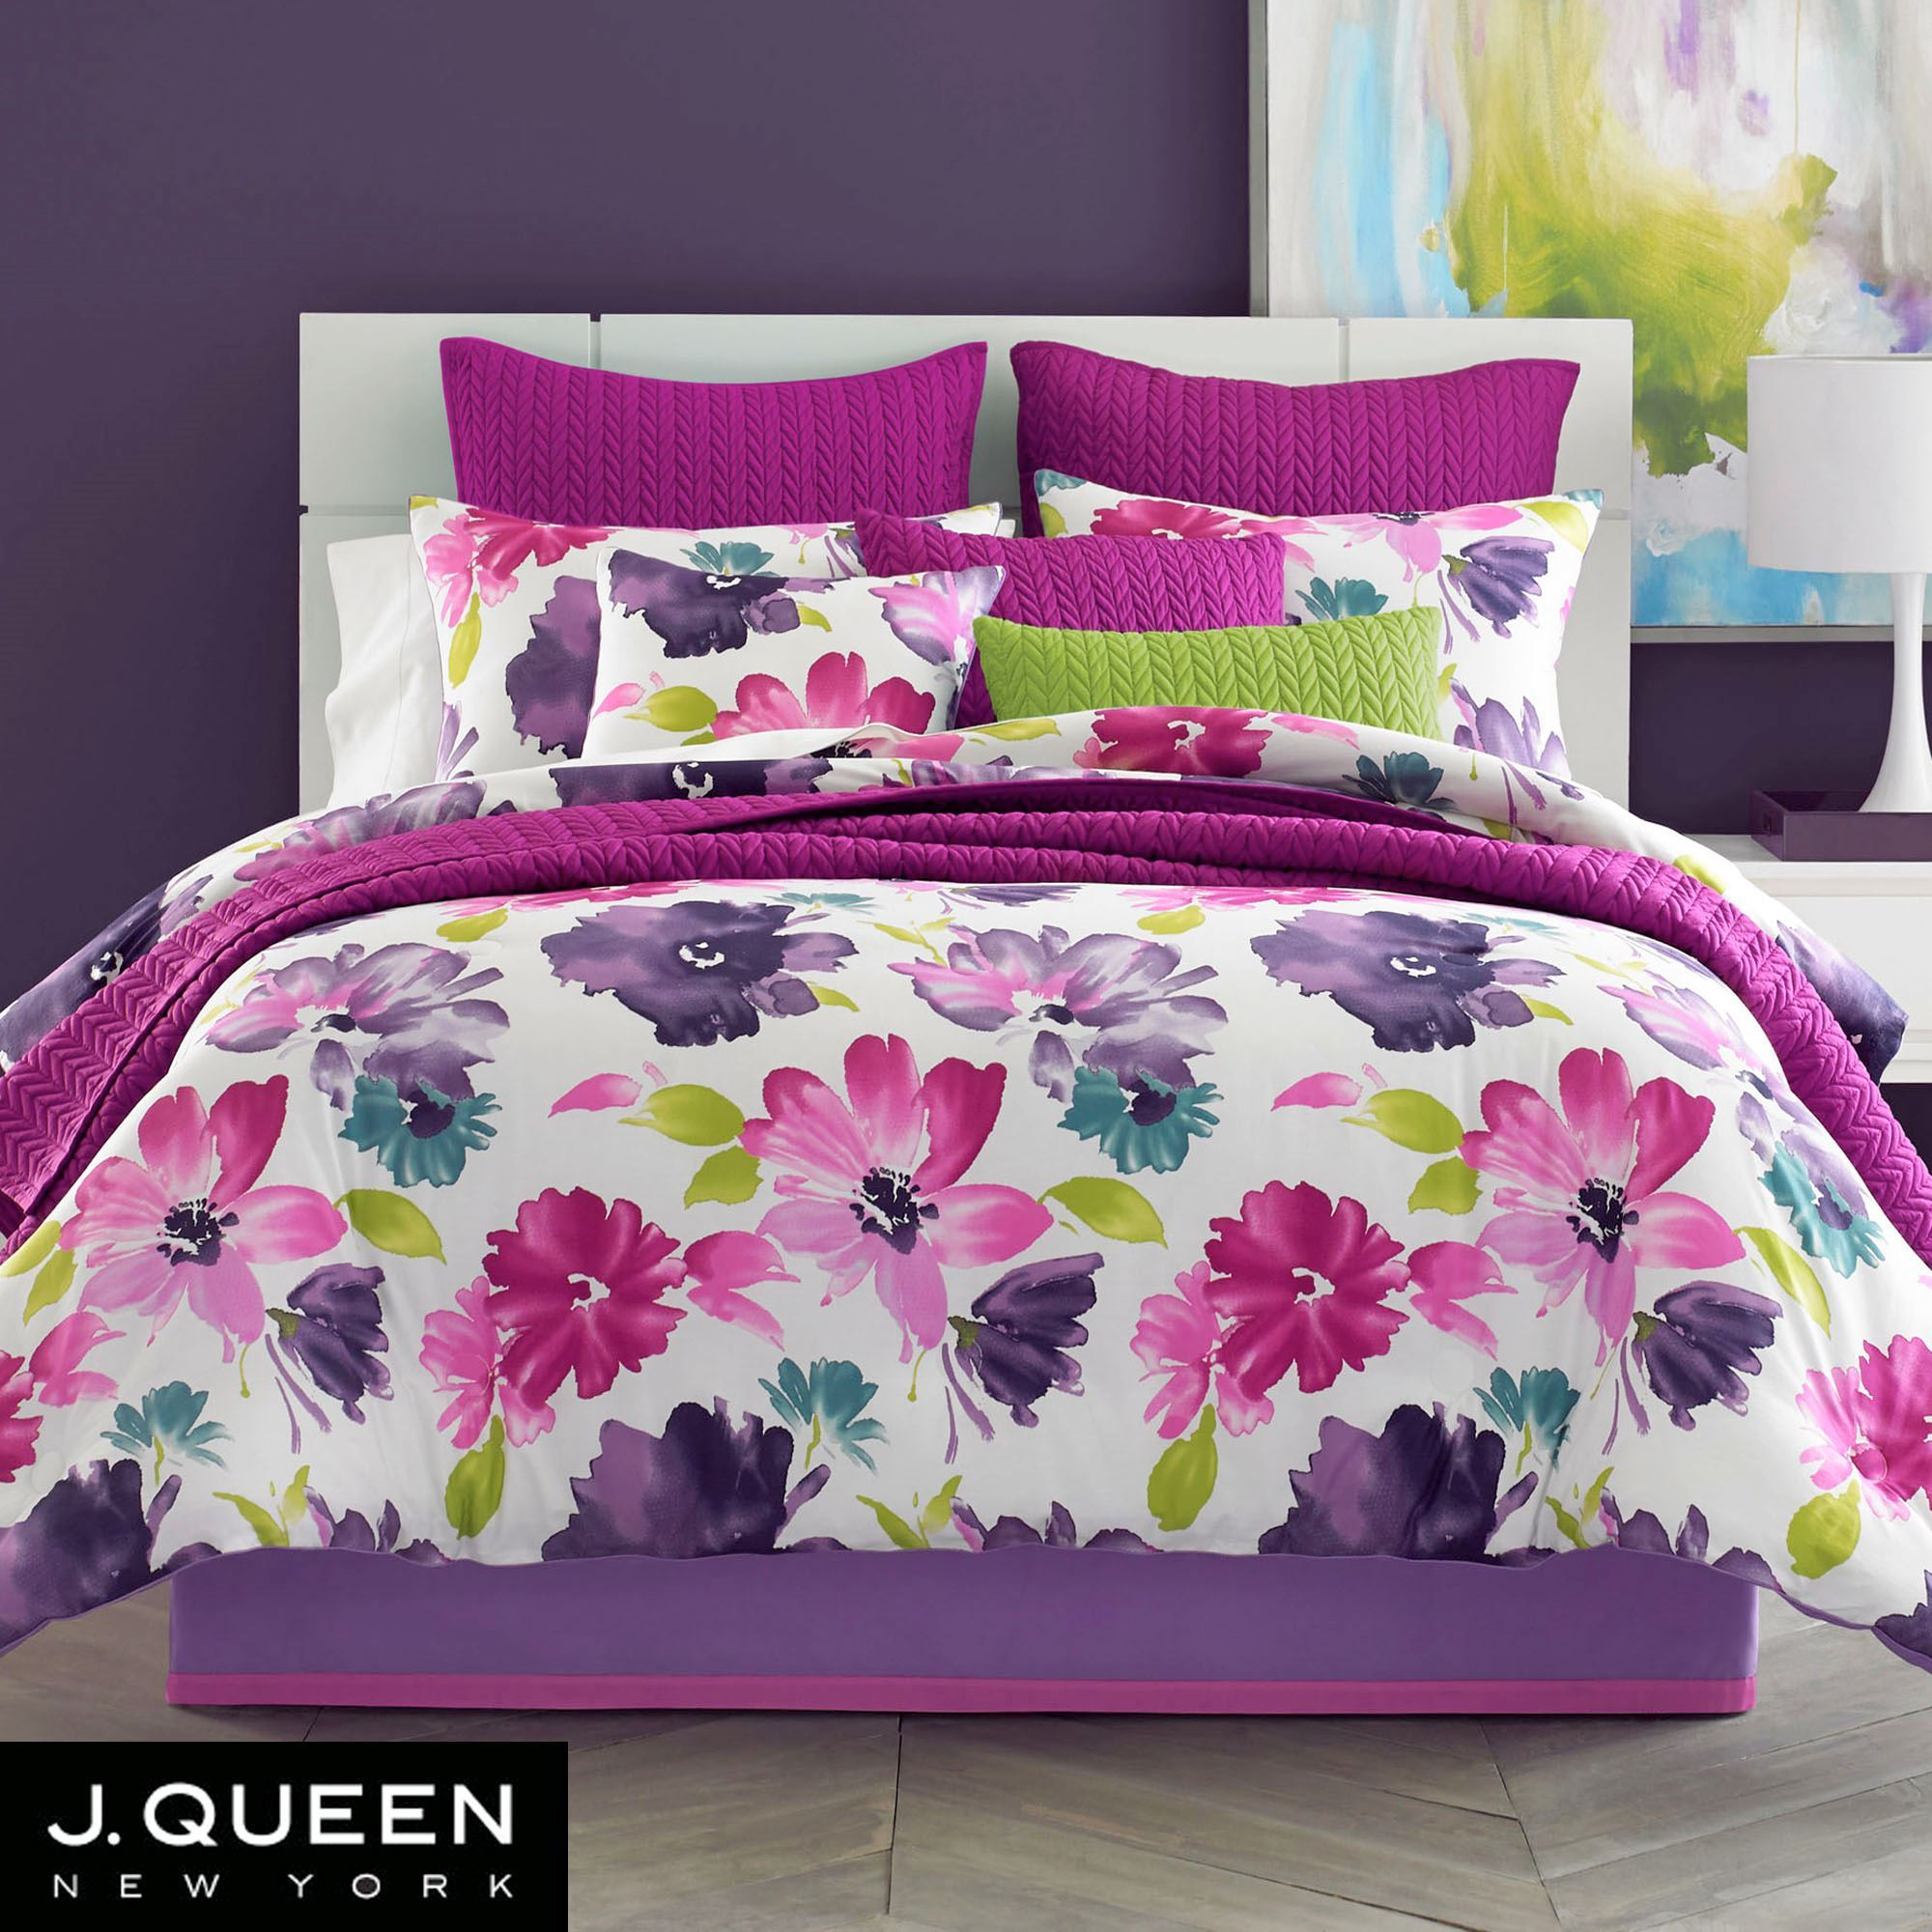 penneys bedspreads bedding queen sets bedspread oversized and comforter imagination